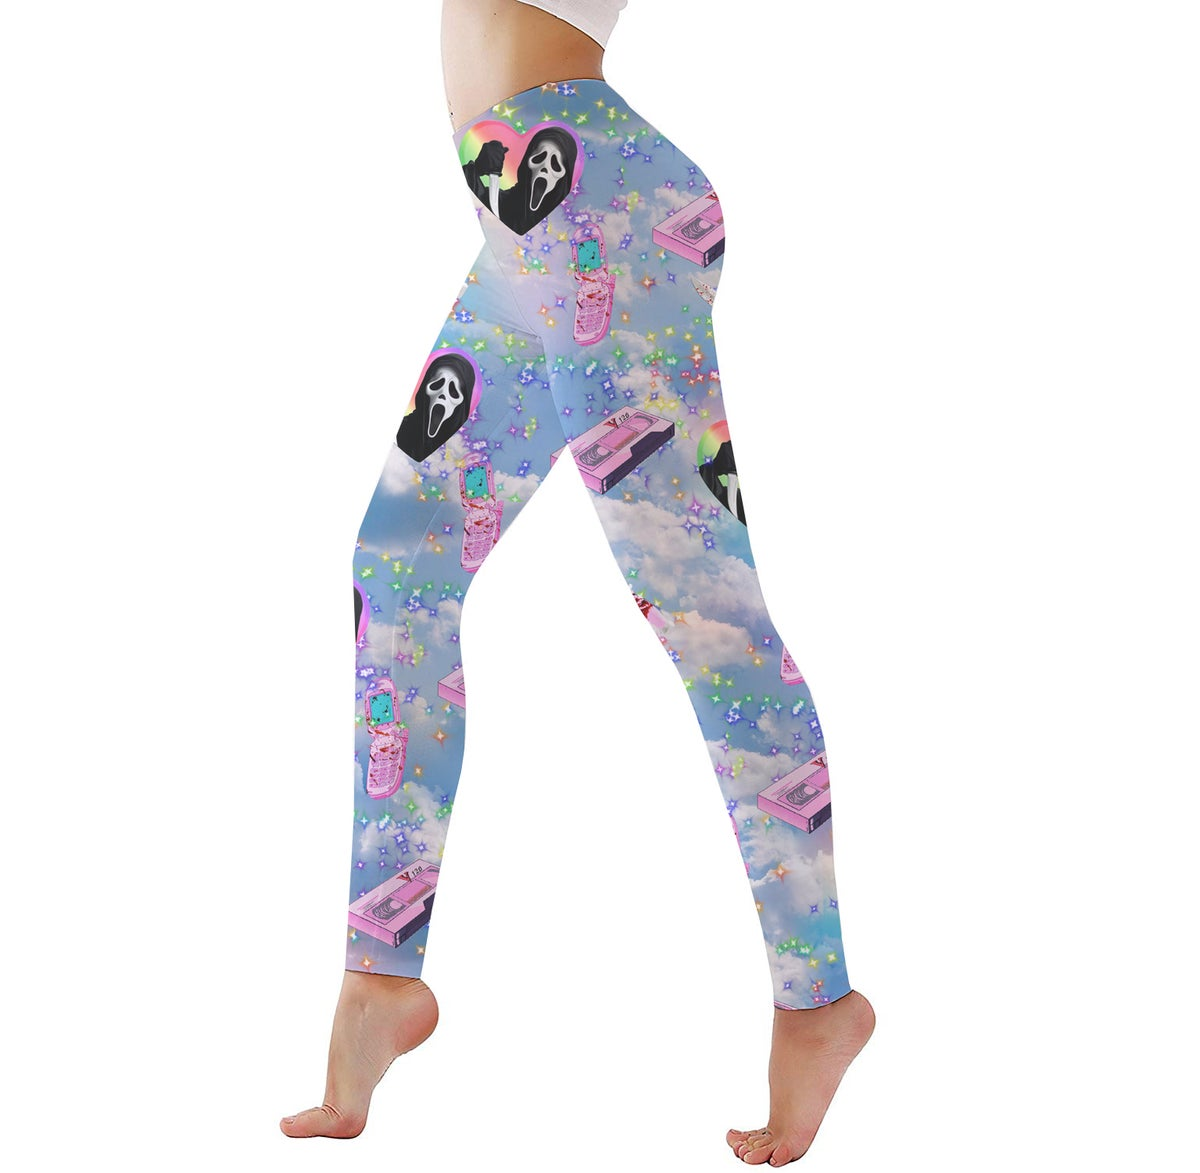 Image of Kawaii Ghostface Activewear Limited Edition PREORDER